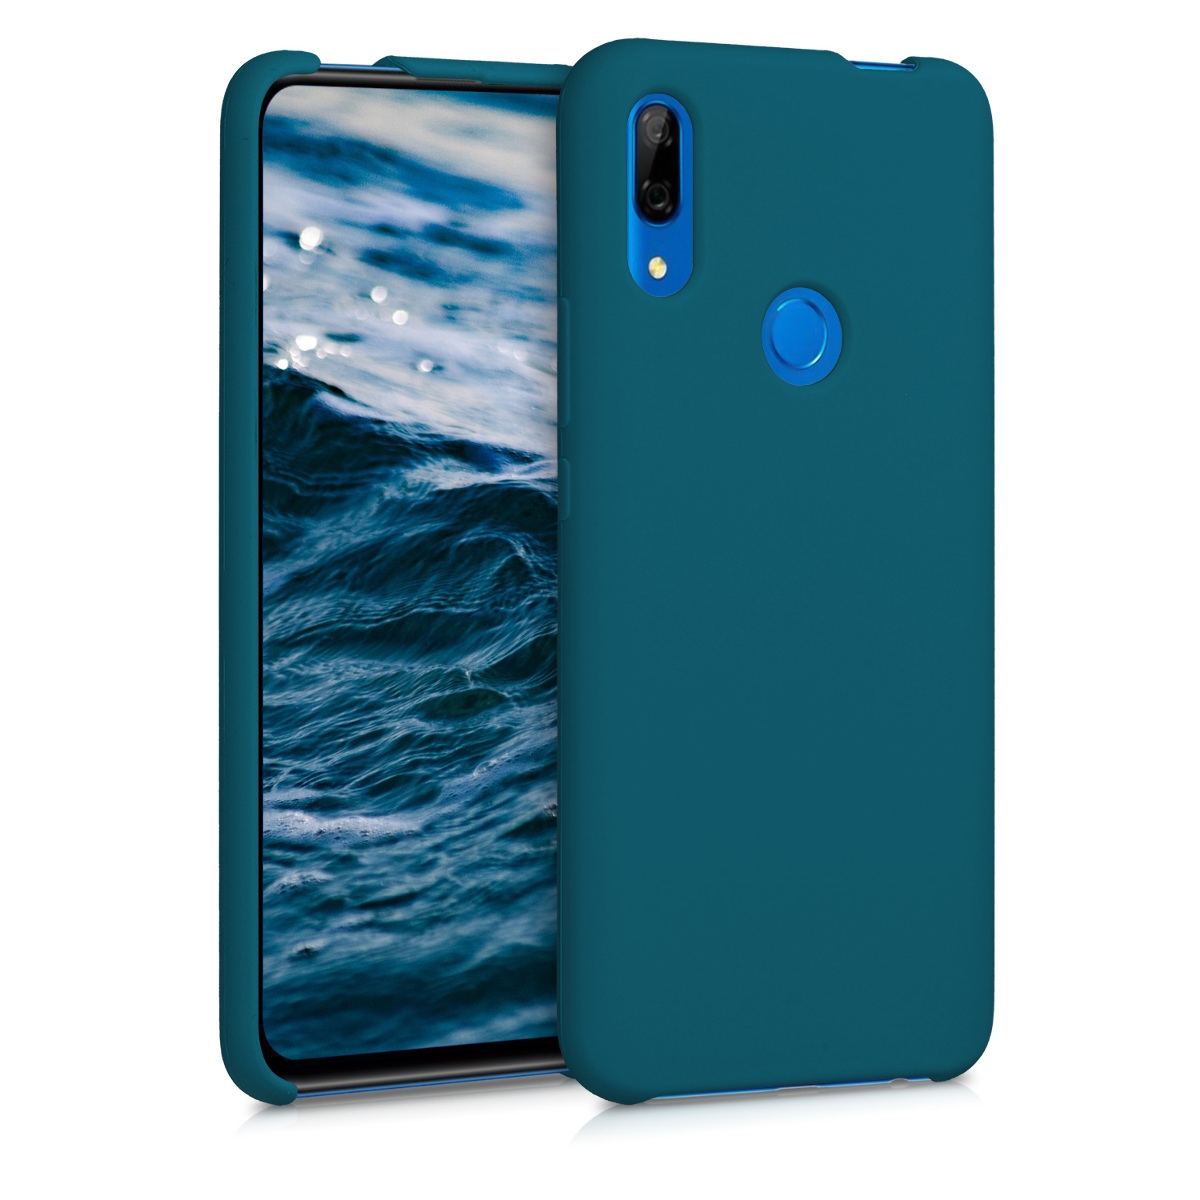 kwmobile TPU Silicone Case for Huawei P Smart Z - Soft Flexible Rubber Protective Cover - Teal Matte